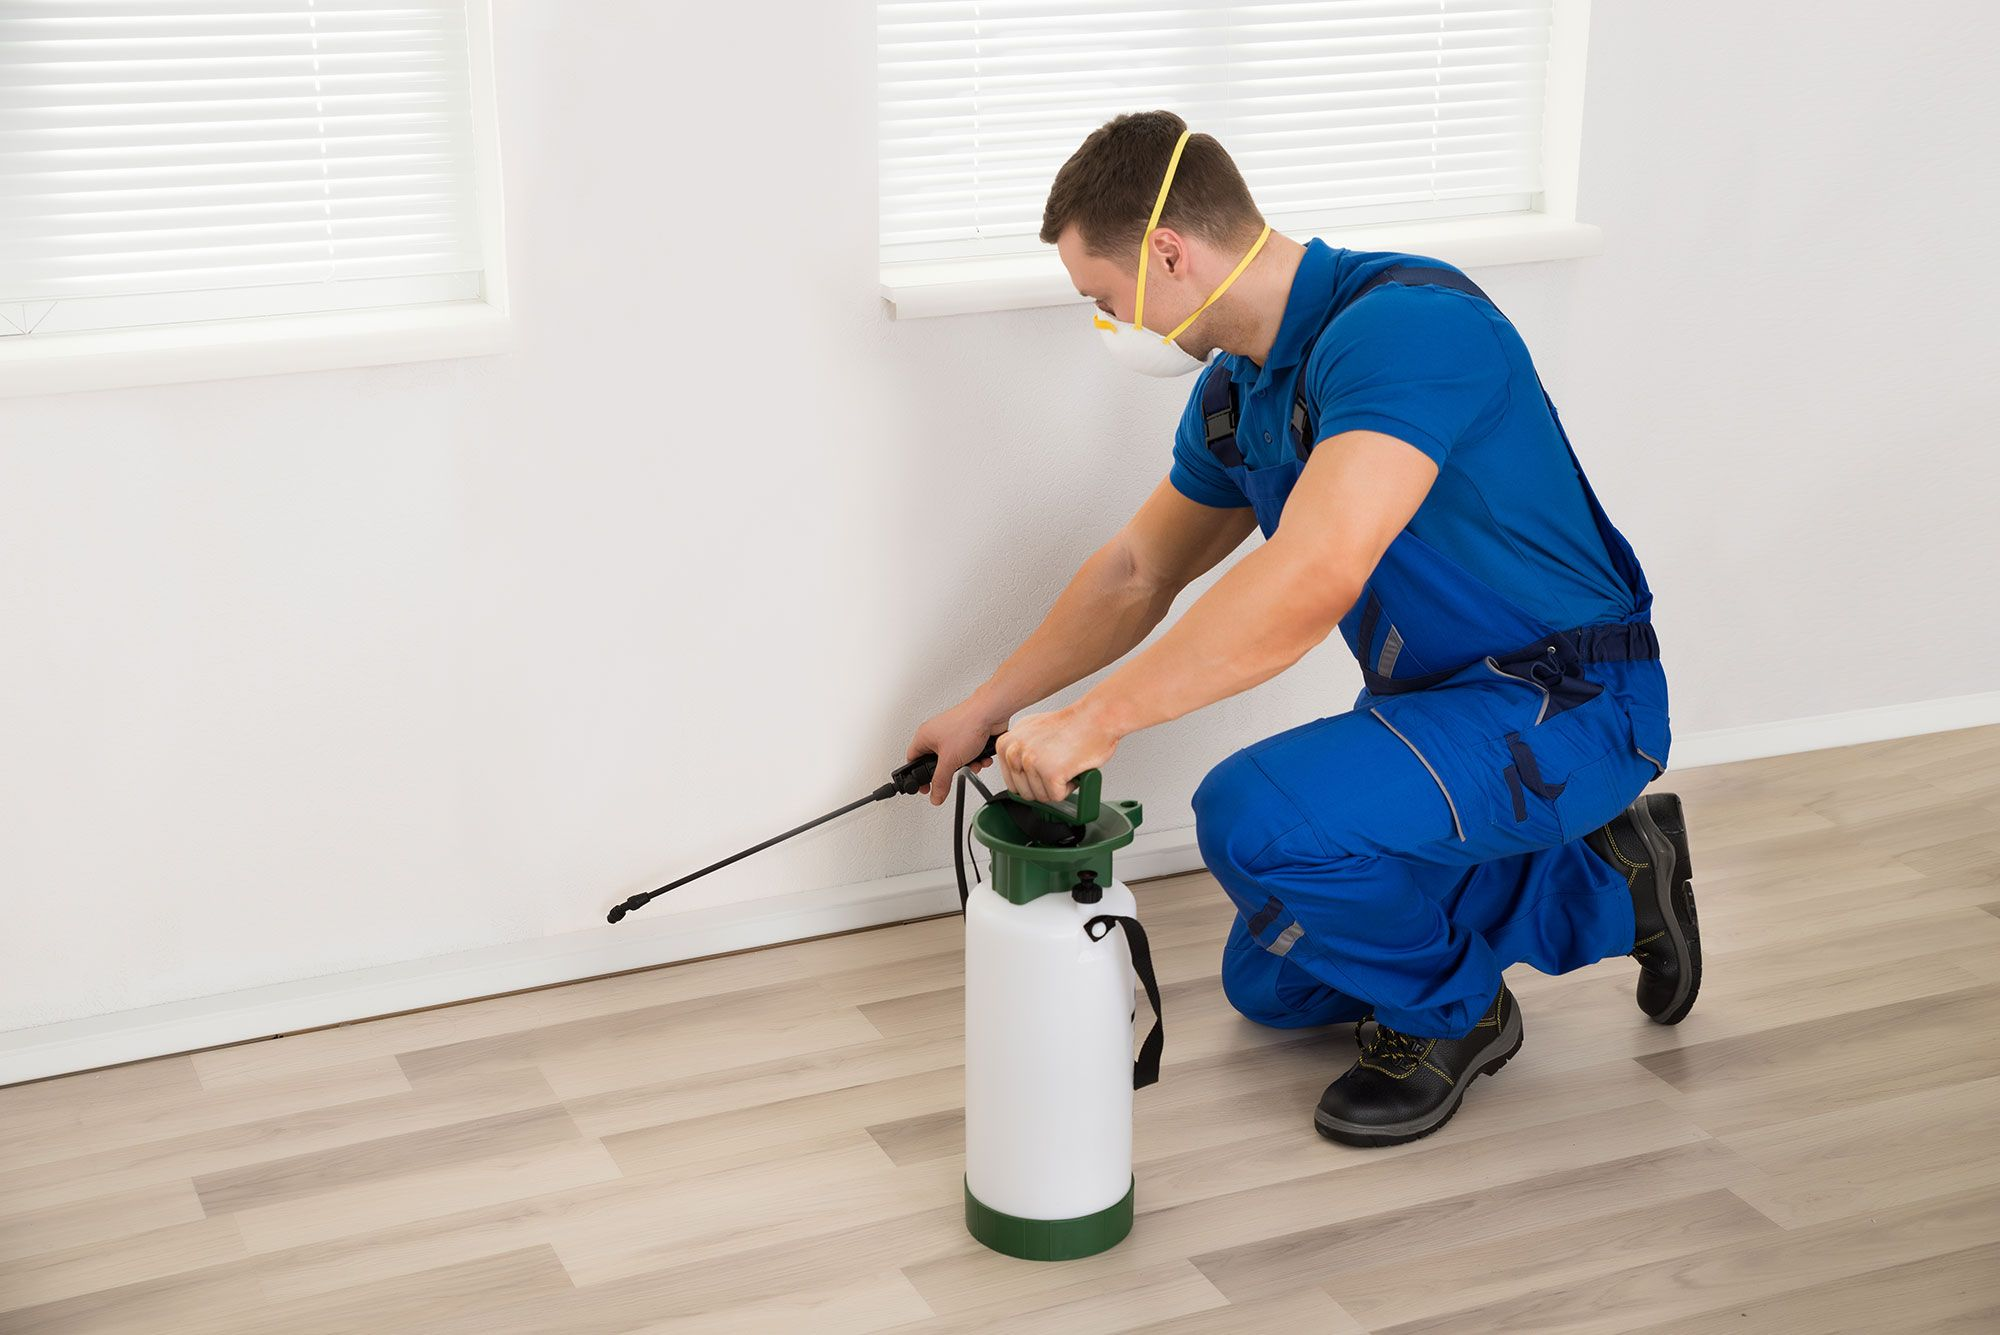 Exterminator Spraying Pesticide in House